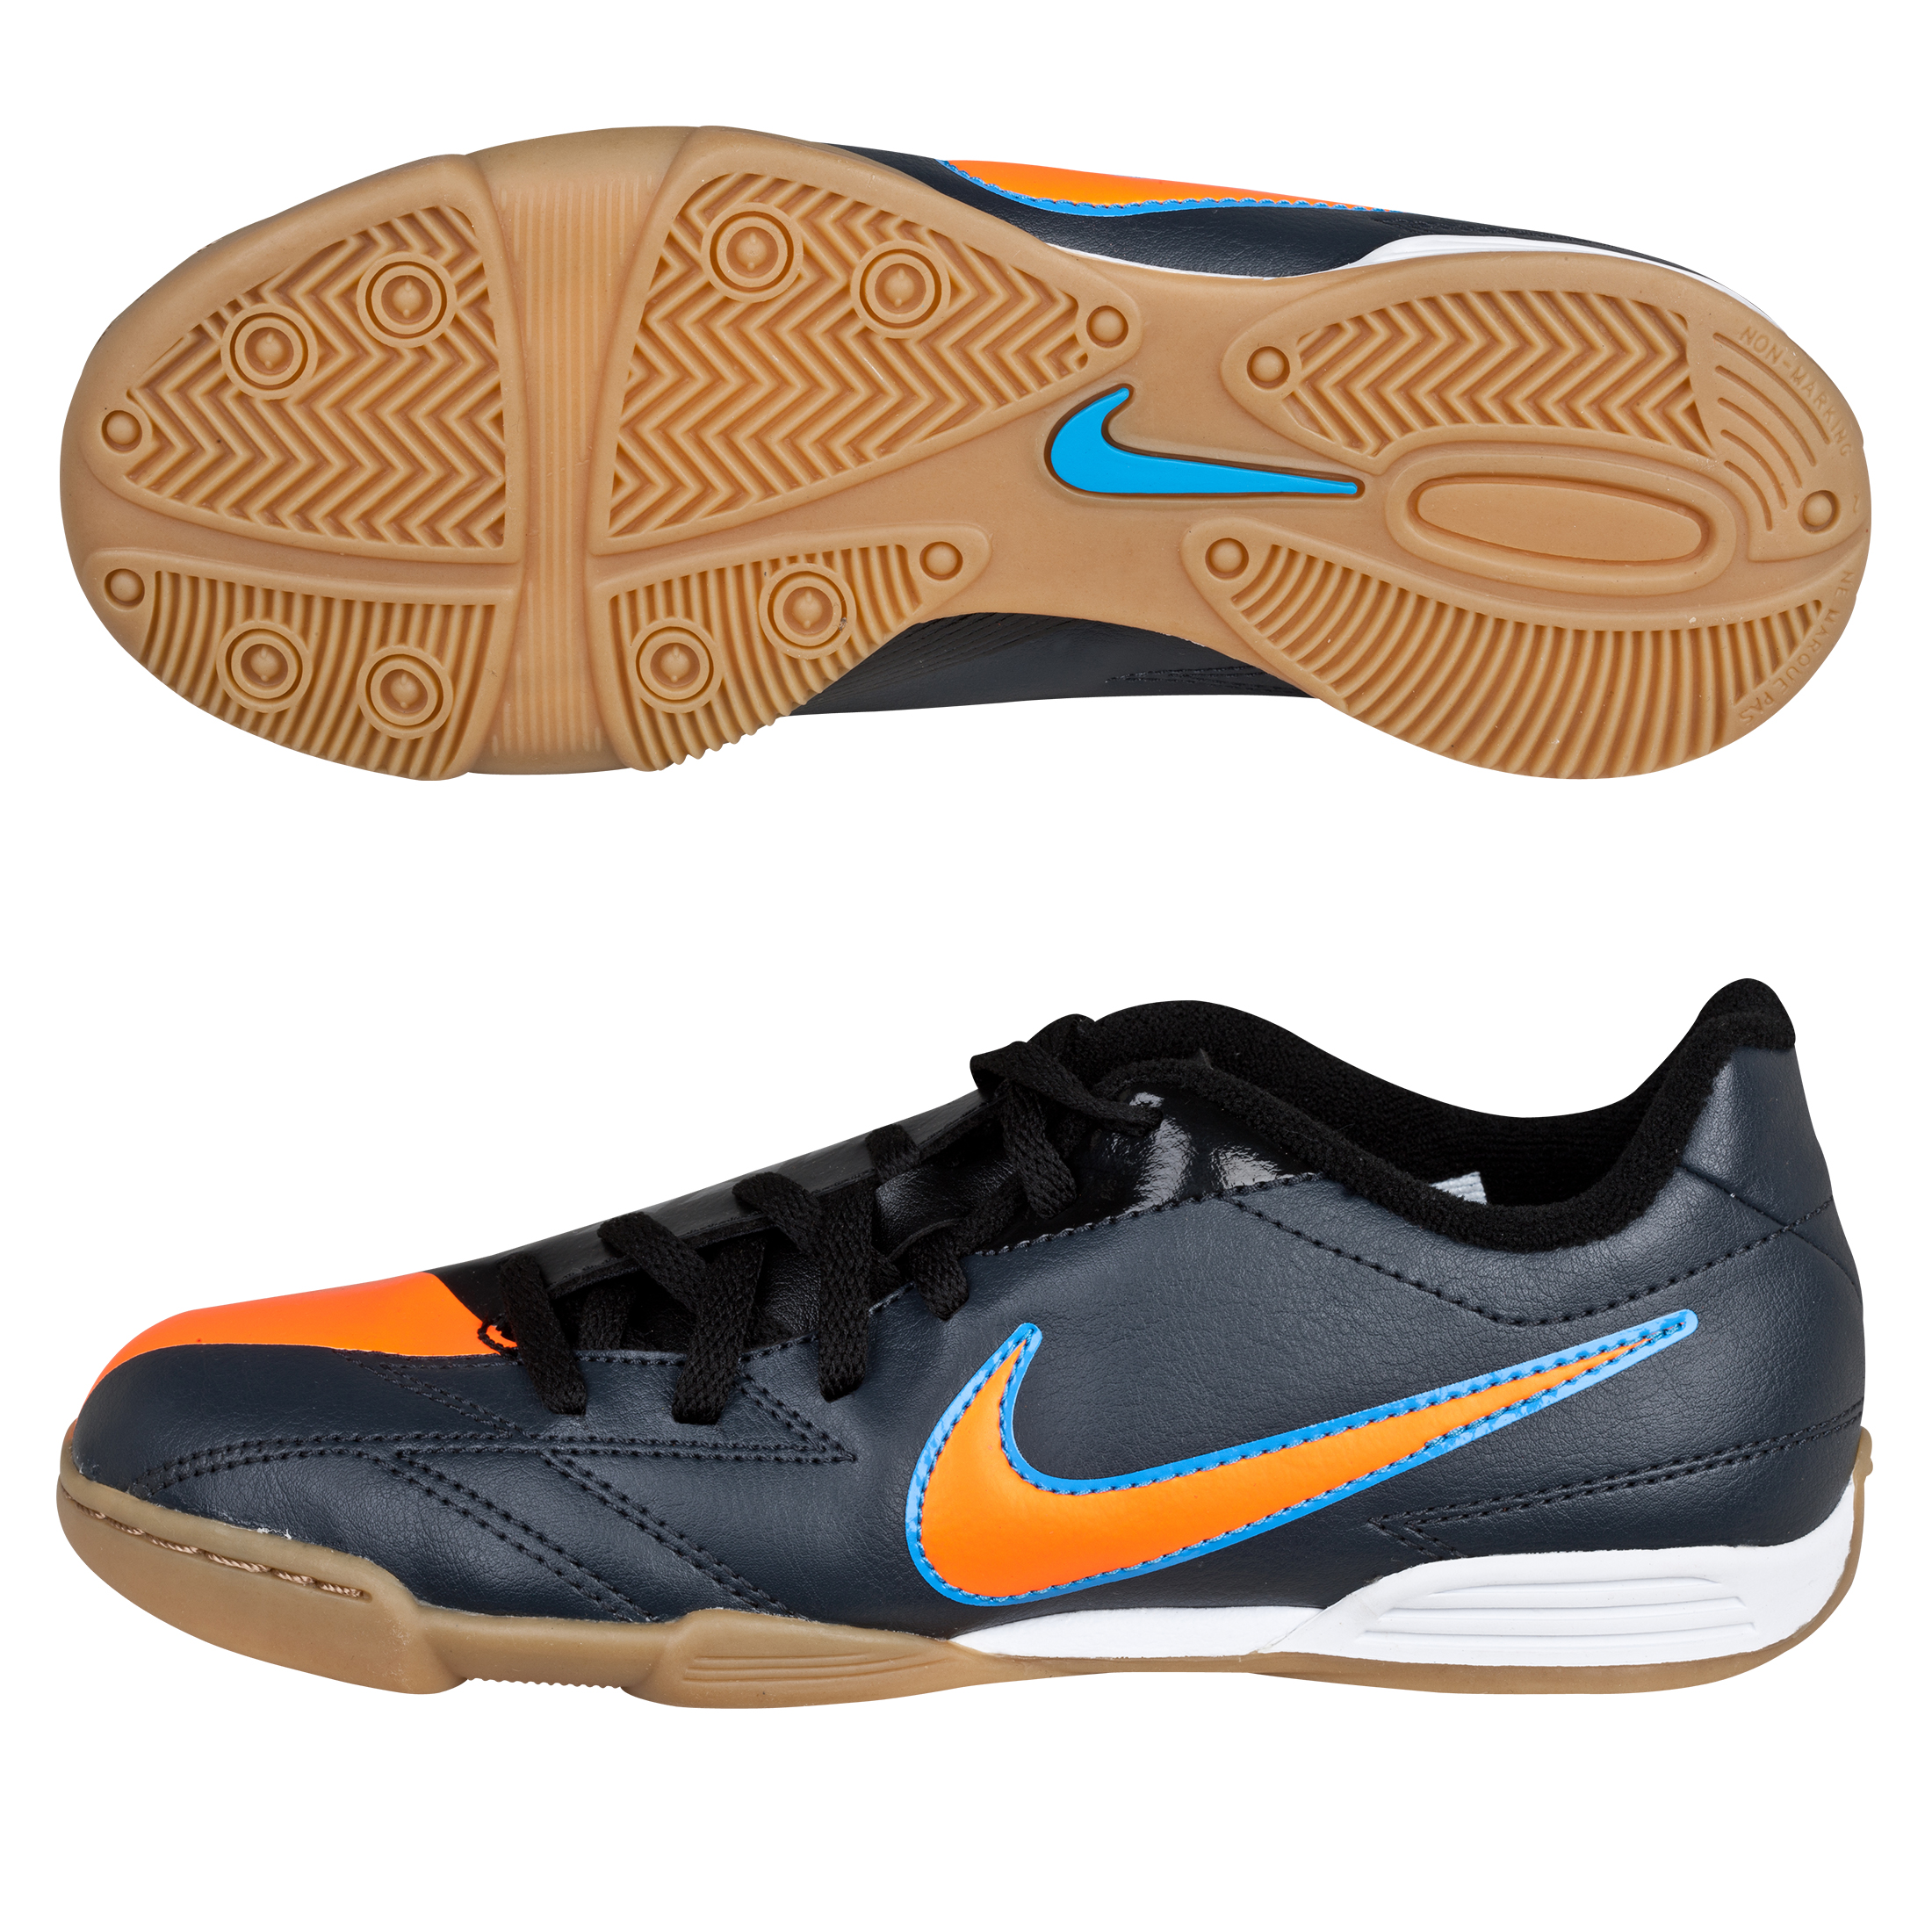 Nike Total90 Exacto IV Trainers - Metallic HMTT/Total Orange/Blue Glow/Black - Kids